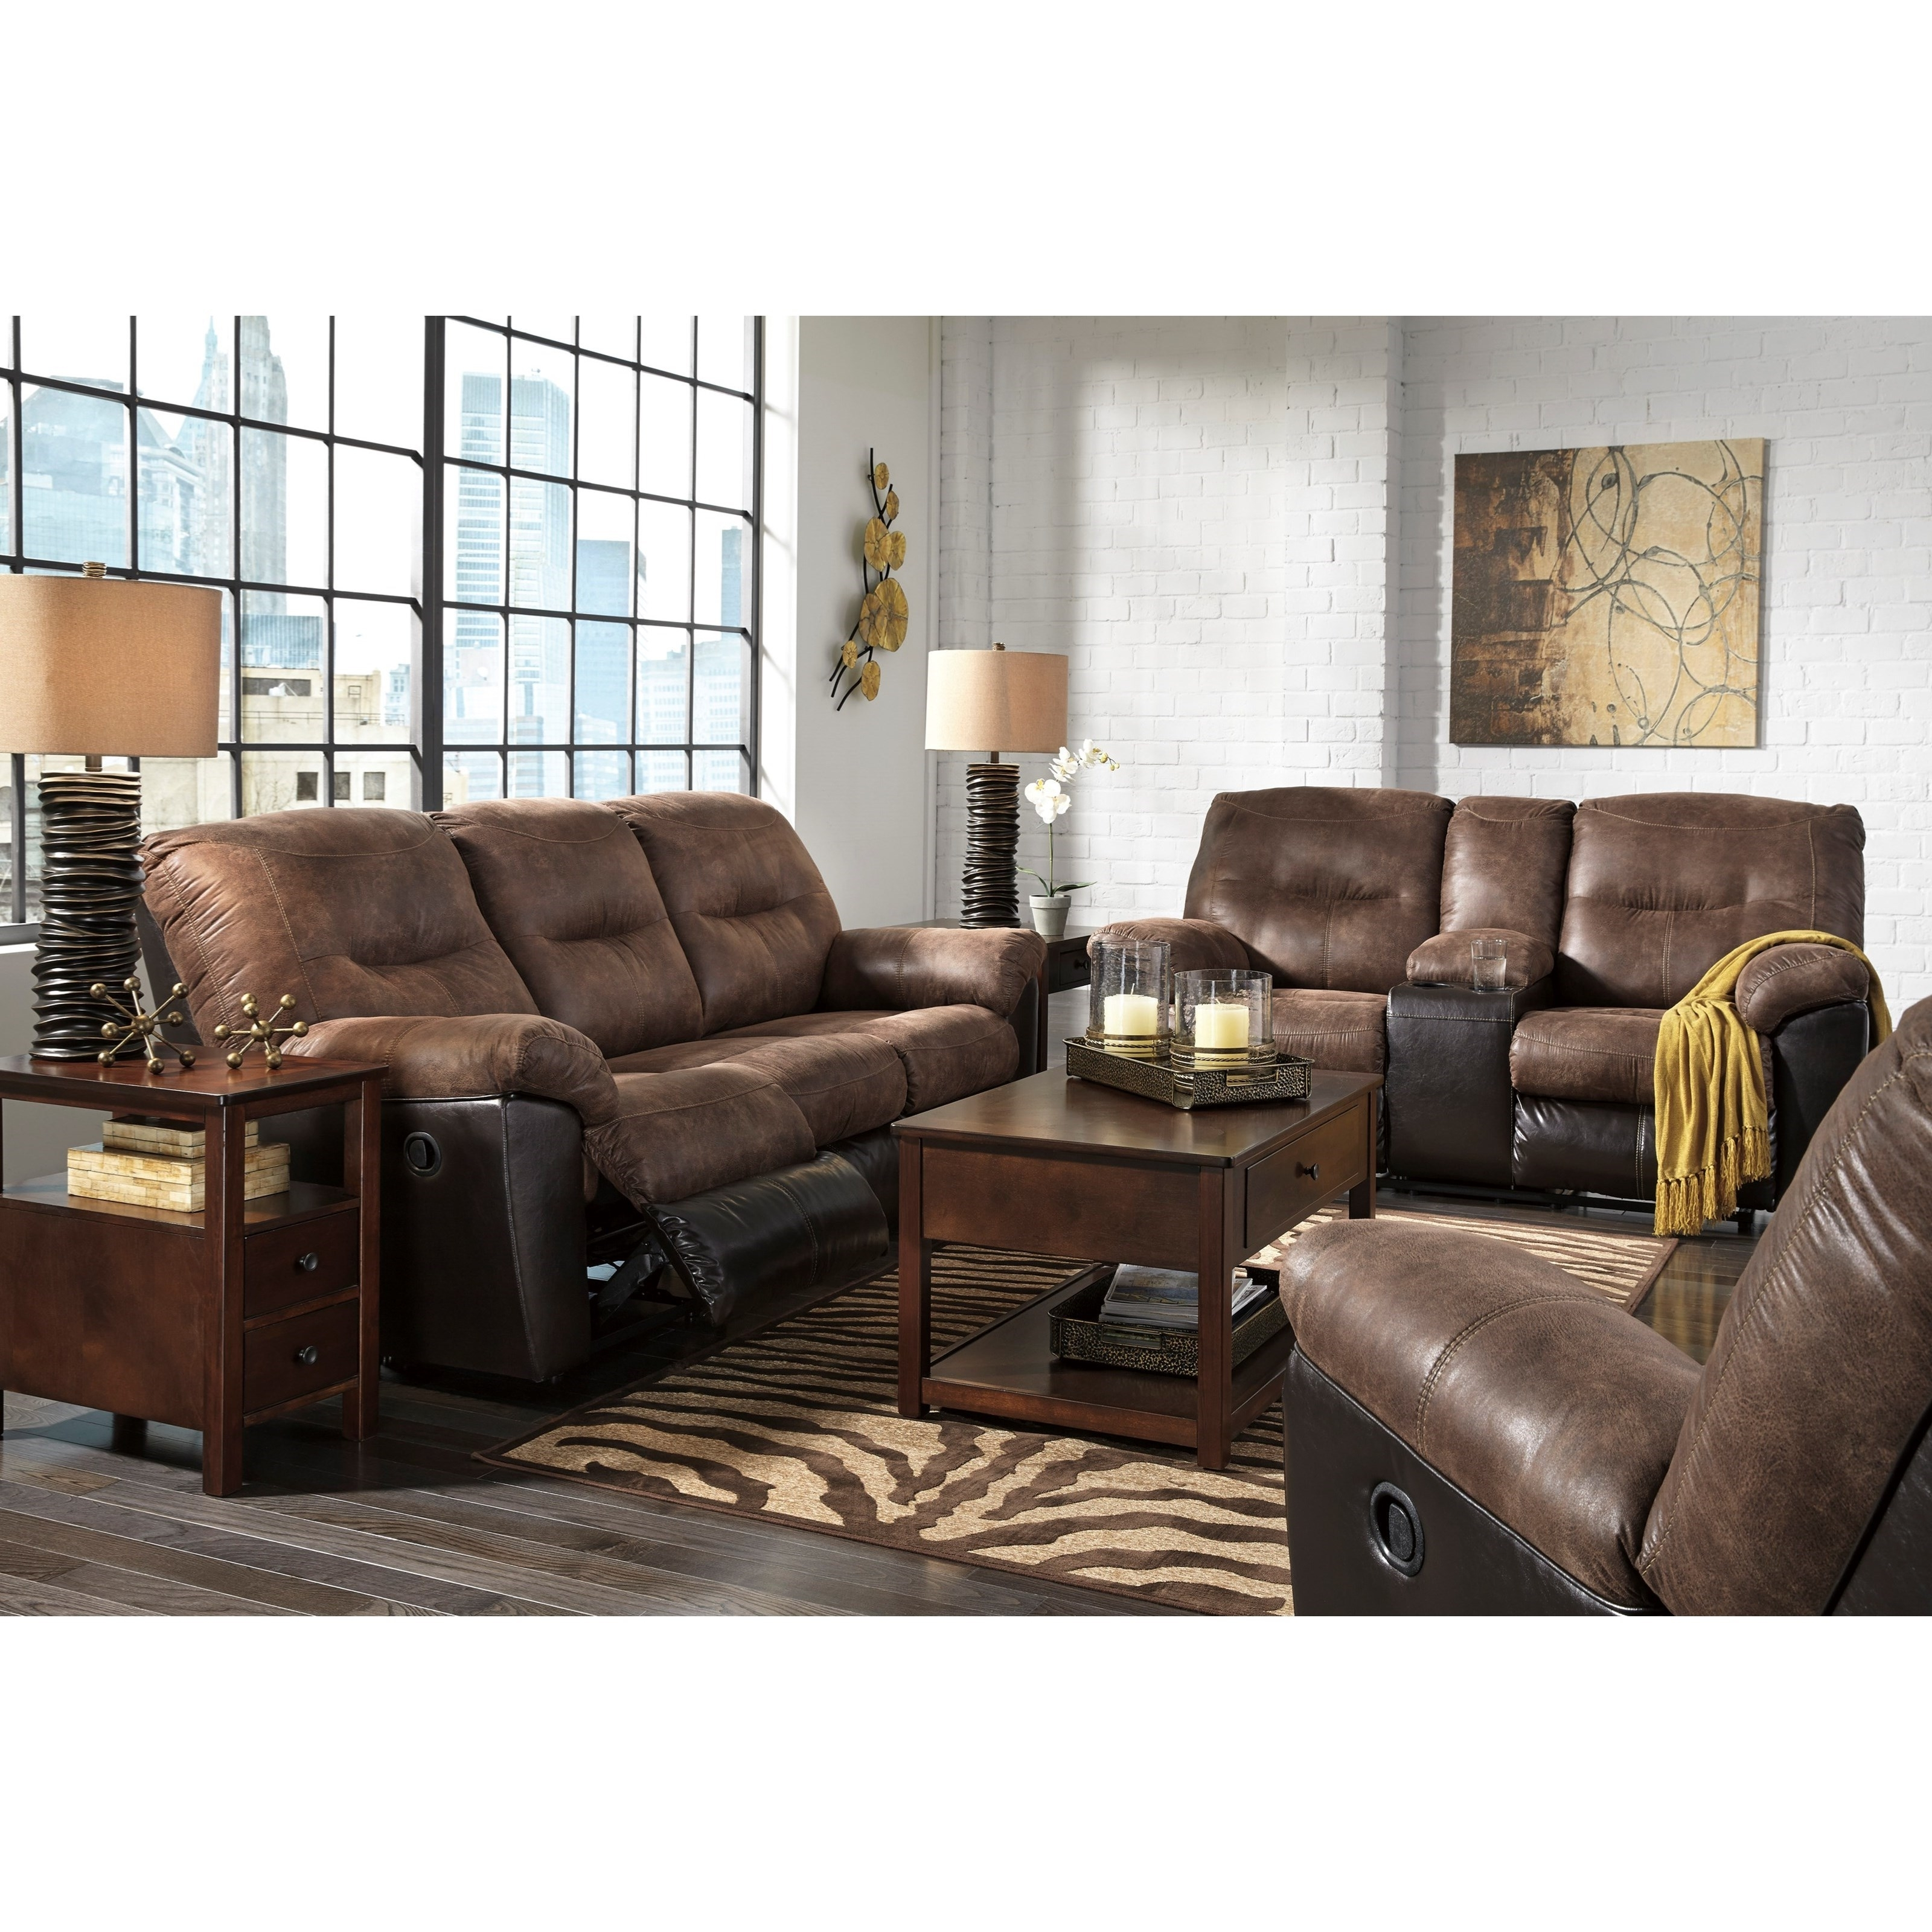 Two Tone Faux Leather Reclining Sofasignature Designashley Pertaining To Fashionable Two Tone Sofas (View 19 of 20)